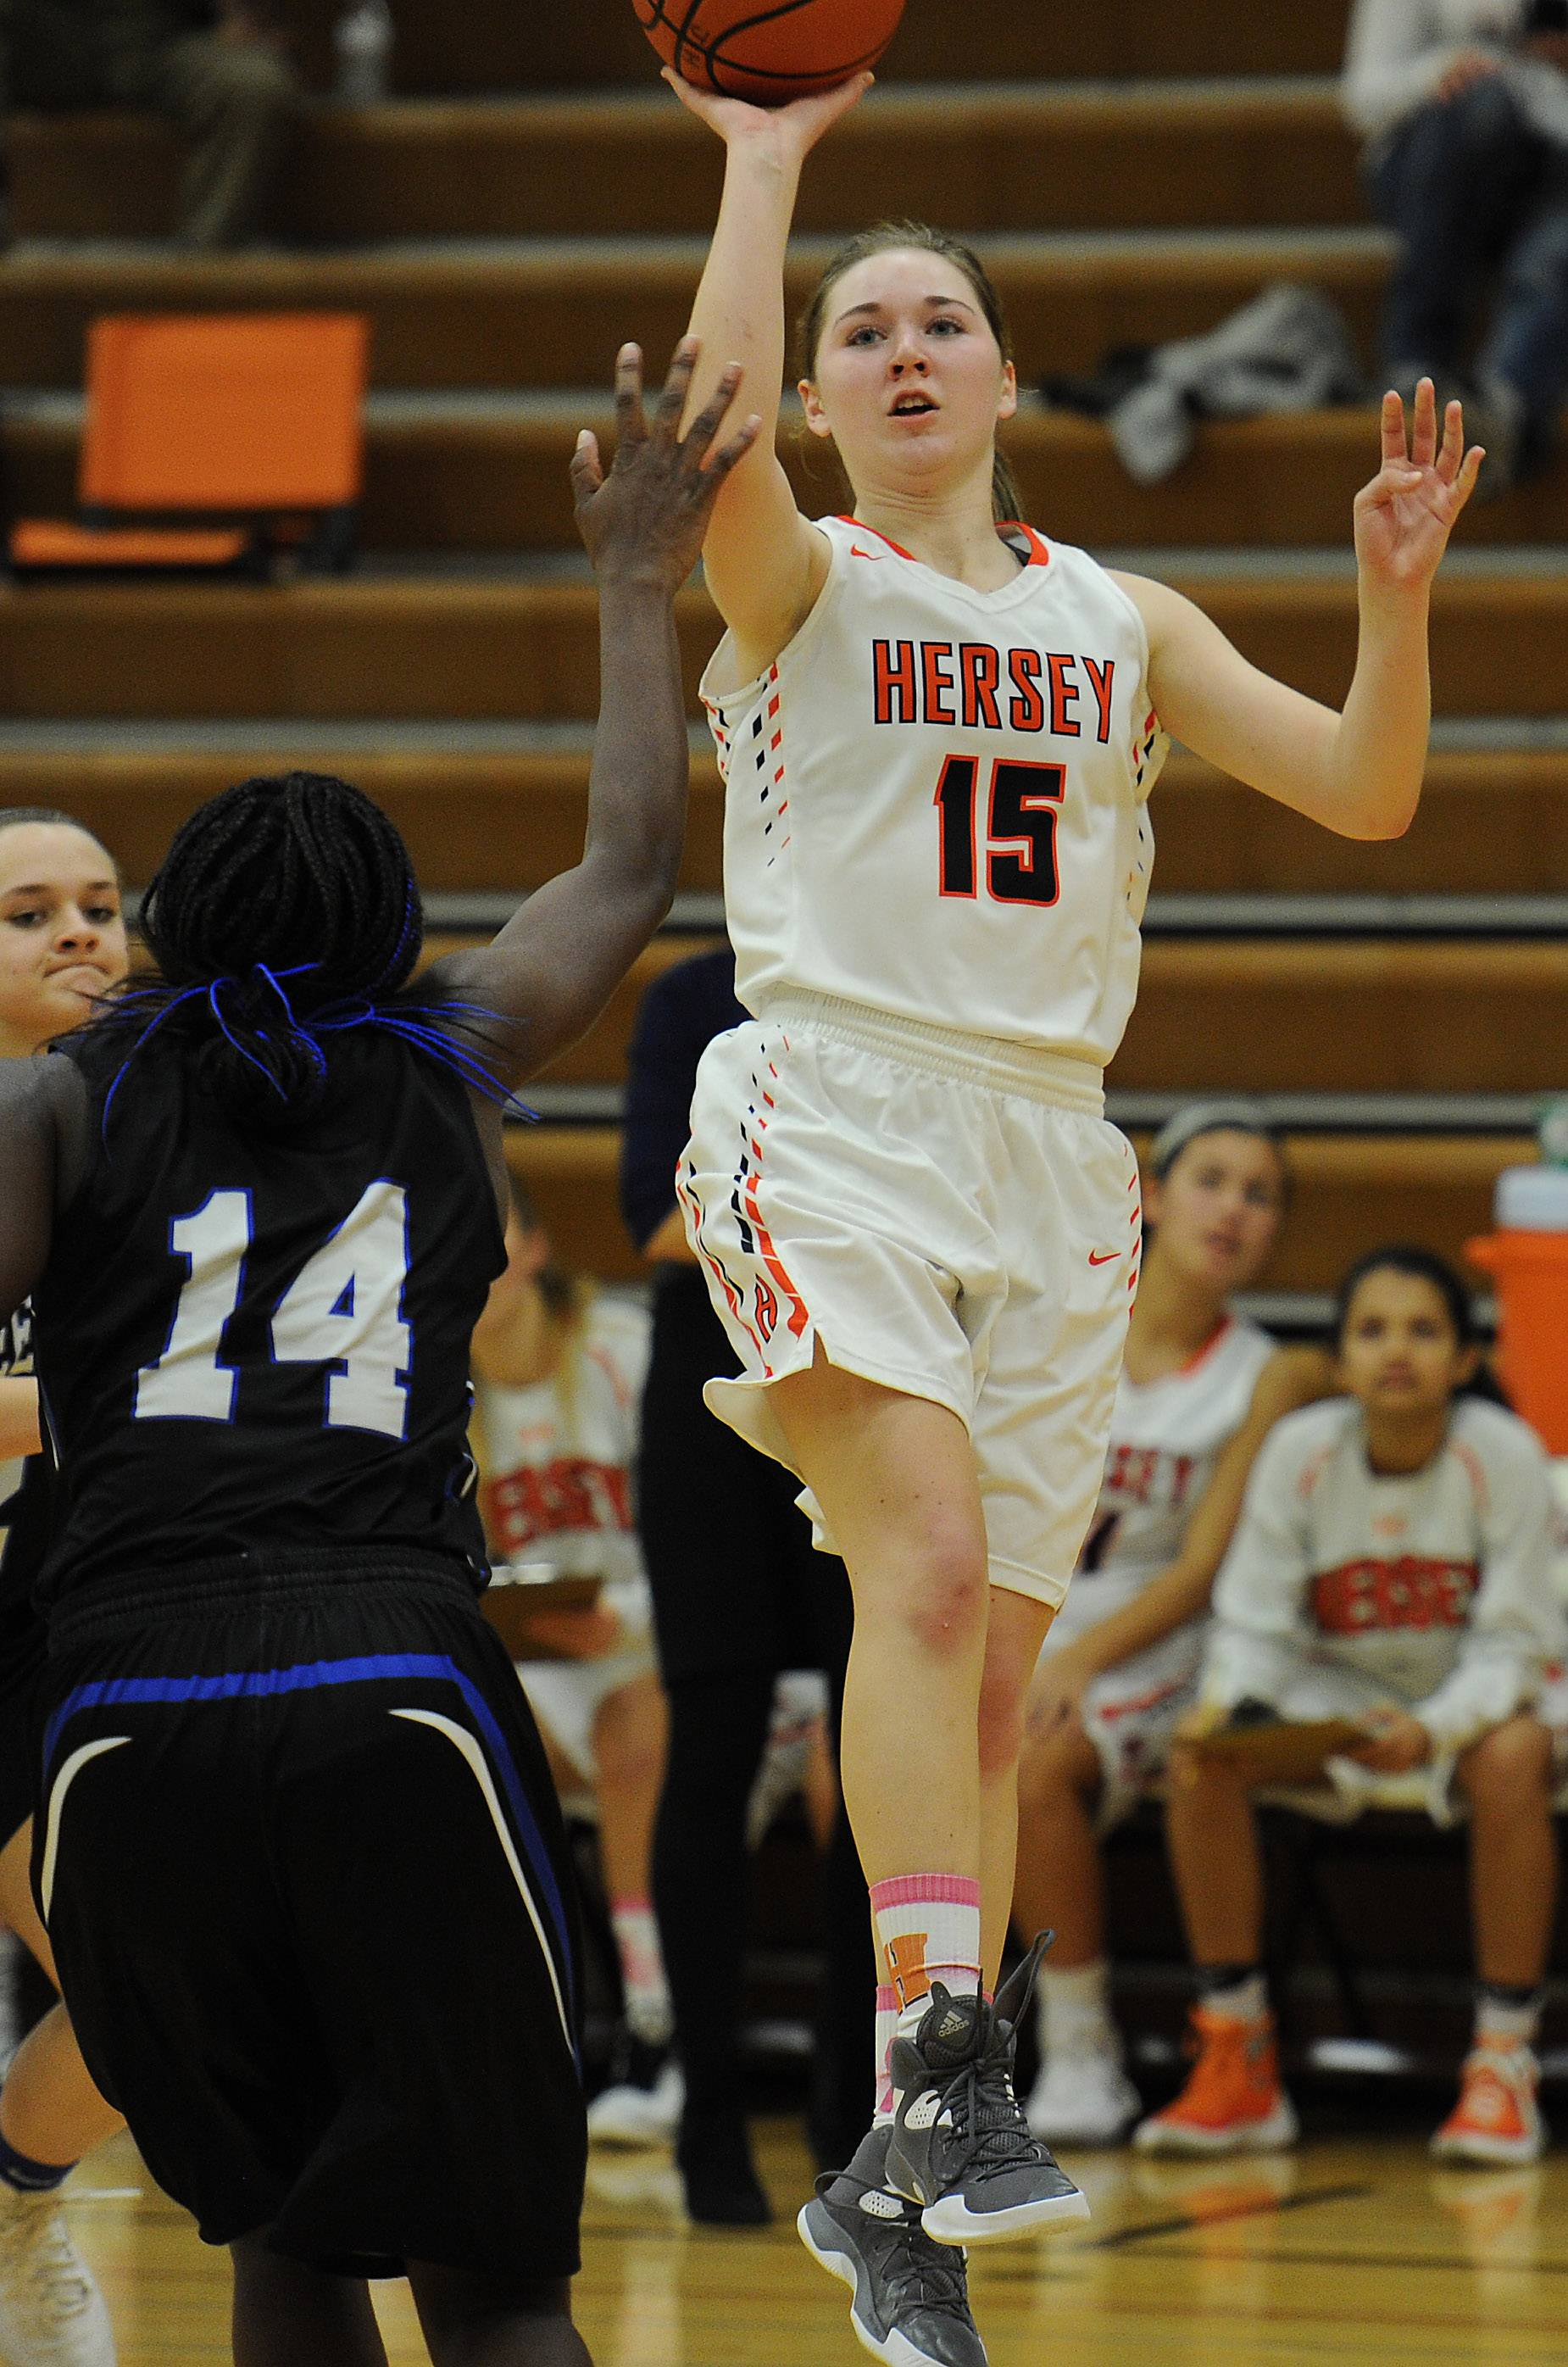 Hersey's Emily Collins delivers despite pressure from Wheeling's Nosa Igiehon in the second half of Hersey's 45-31 victory over visiting Wheeling.